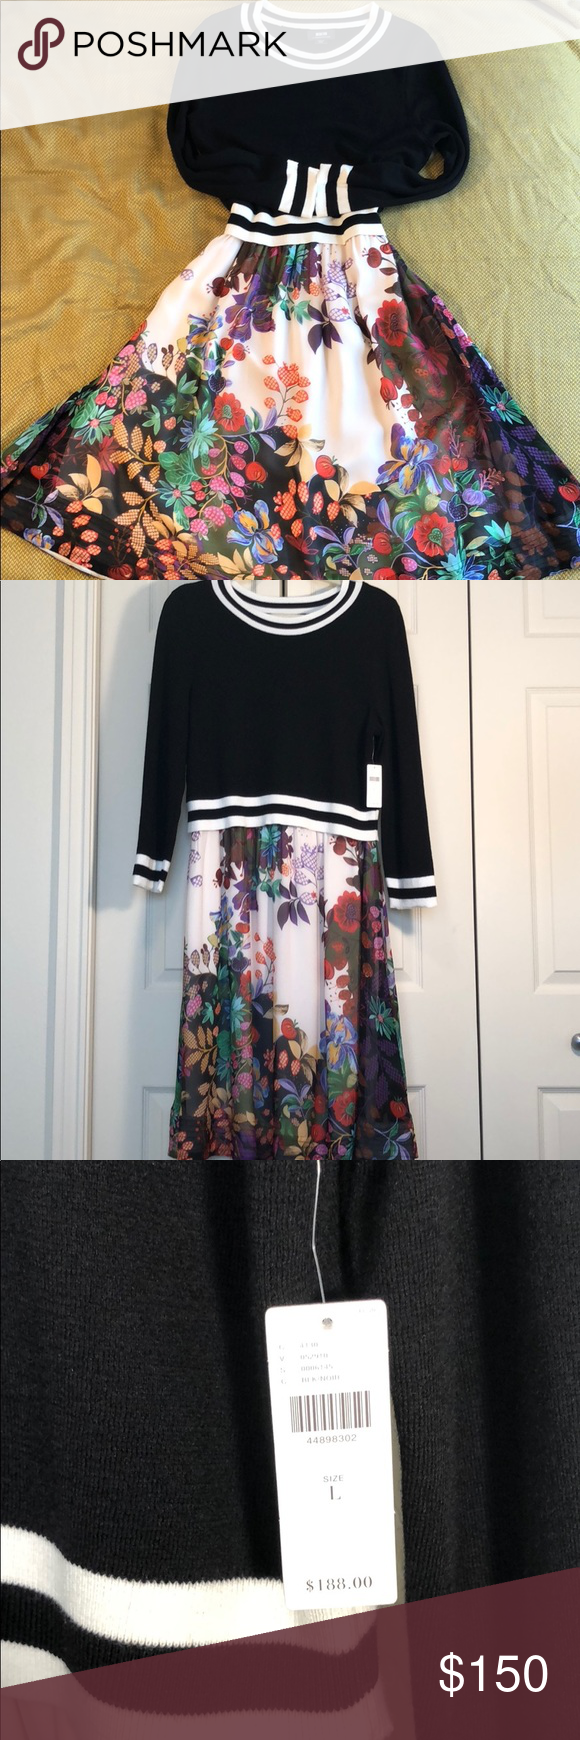 e5c60ce95ce Anthropologie Maeve dress Anthropologie Maeve dress NWT Fully lined skirt  of sheer silky fabric covered in